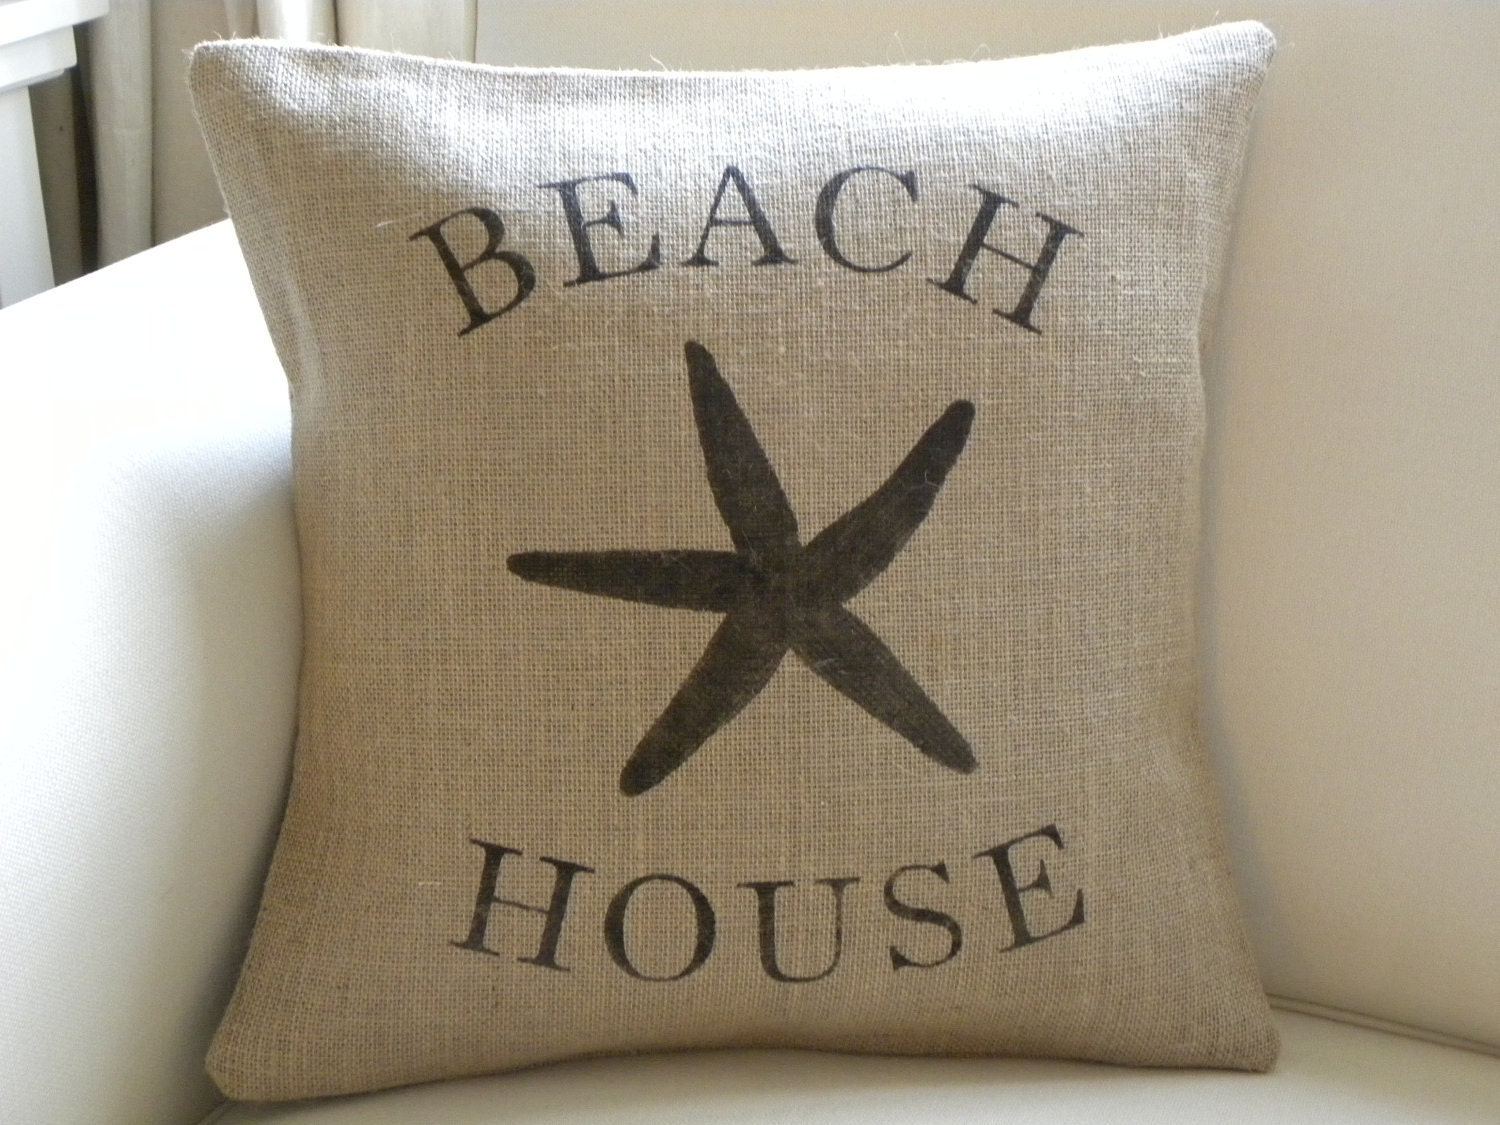 Burlap beach house starfish sea star pillow cover - TheNestUK